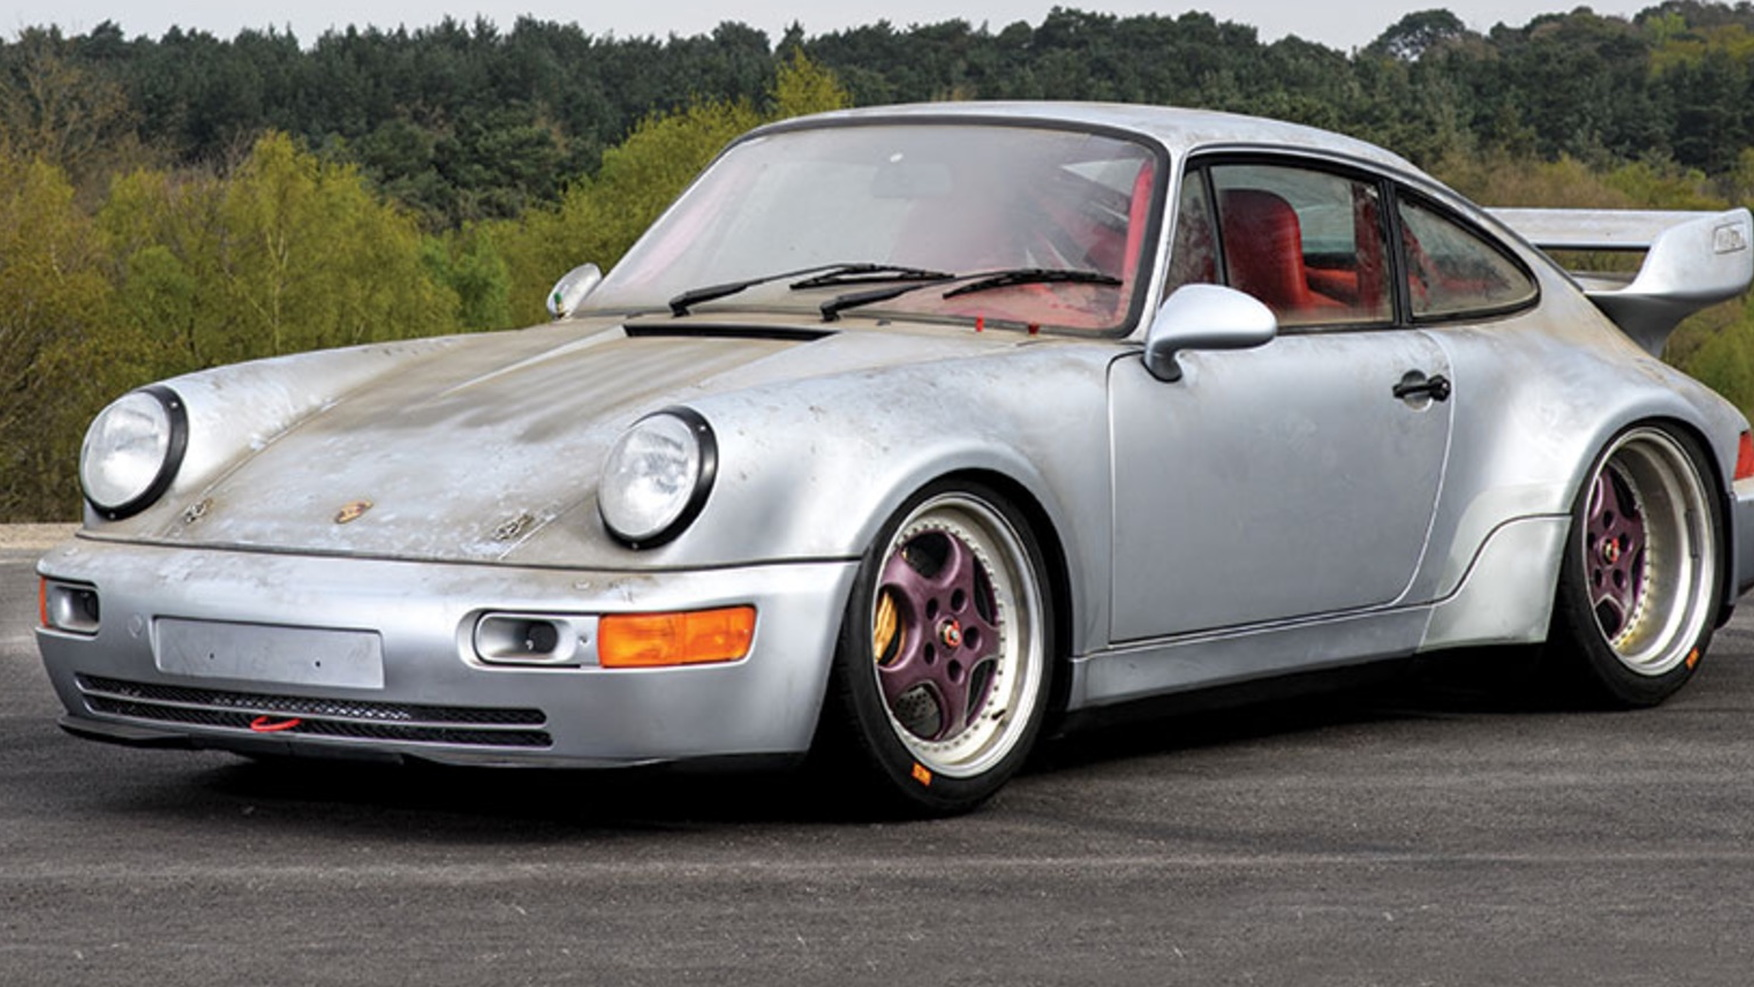 Forgotten 1993 Porsche 911 Carrera RSR for sale with only 6